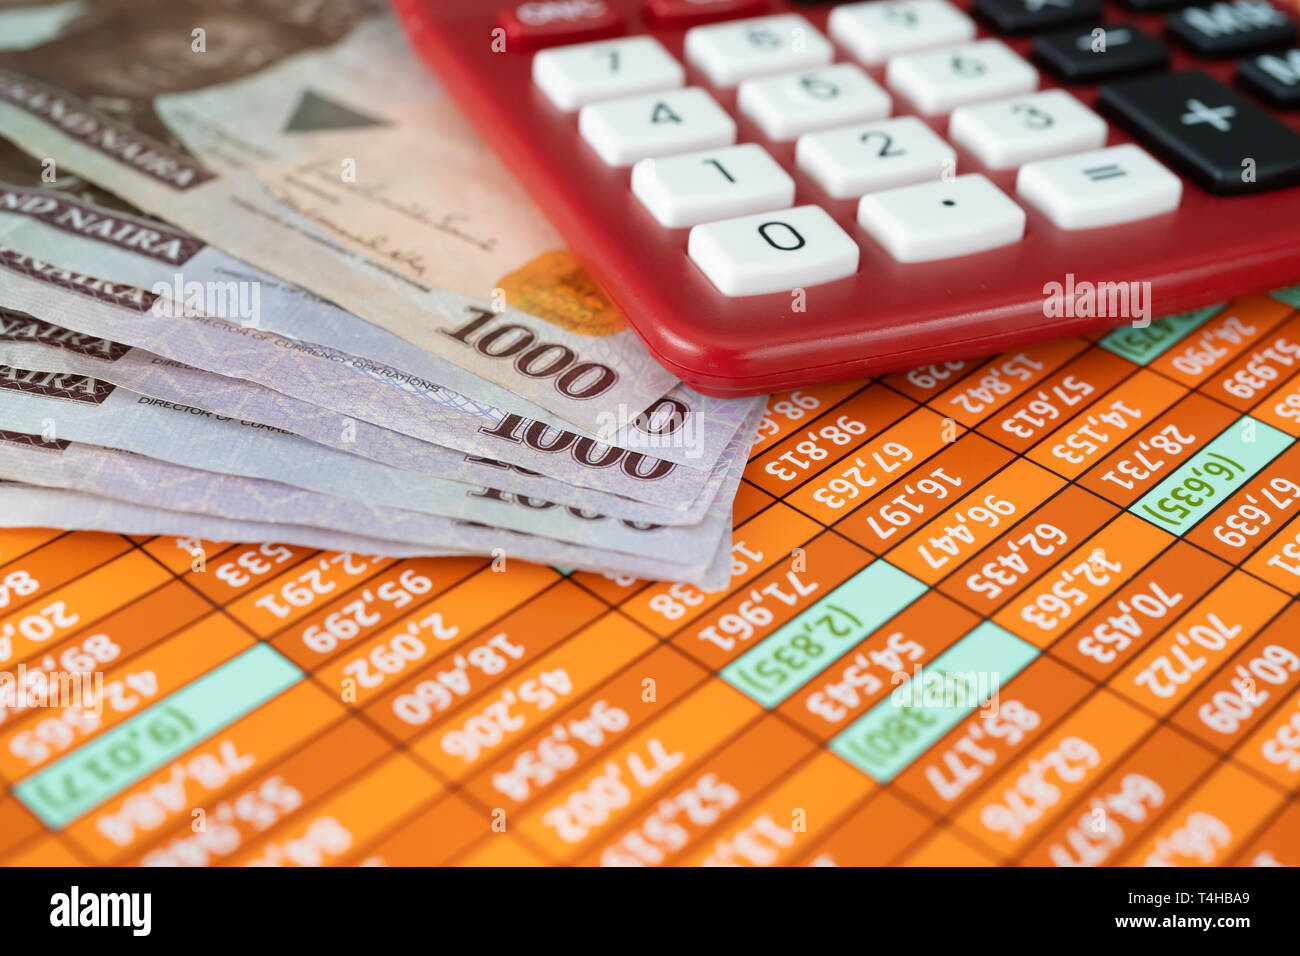 Nigerian Naira Notes with Calculator on Spreadsheet - Stock Image